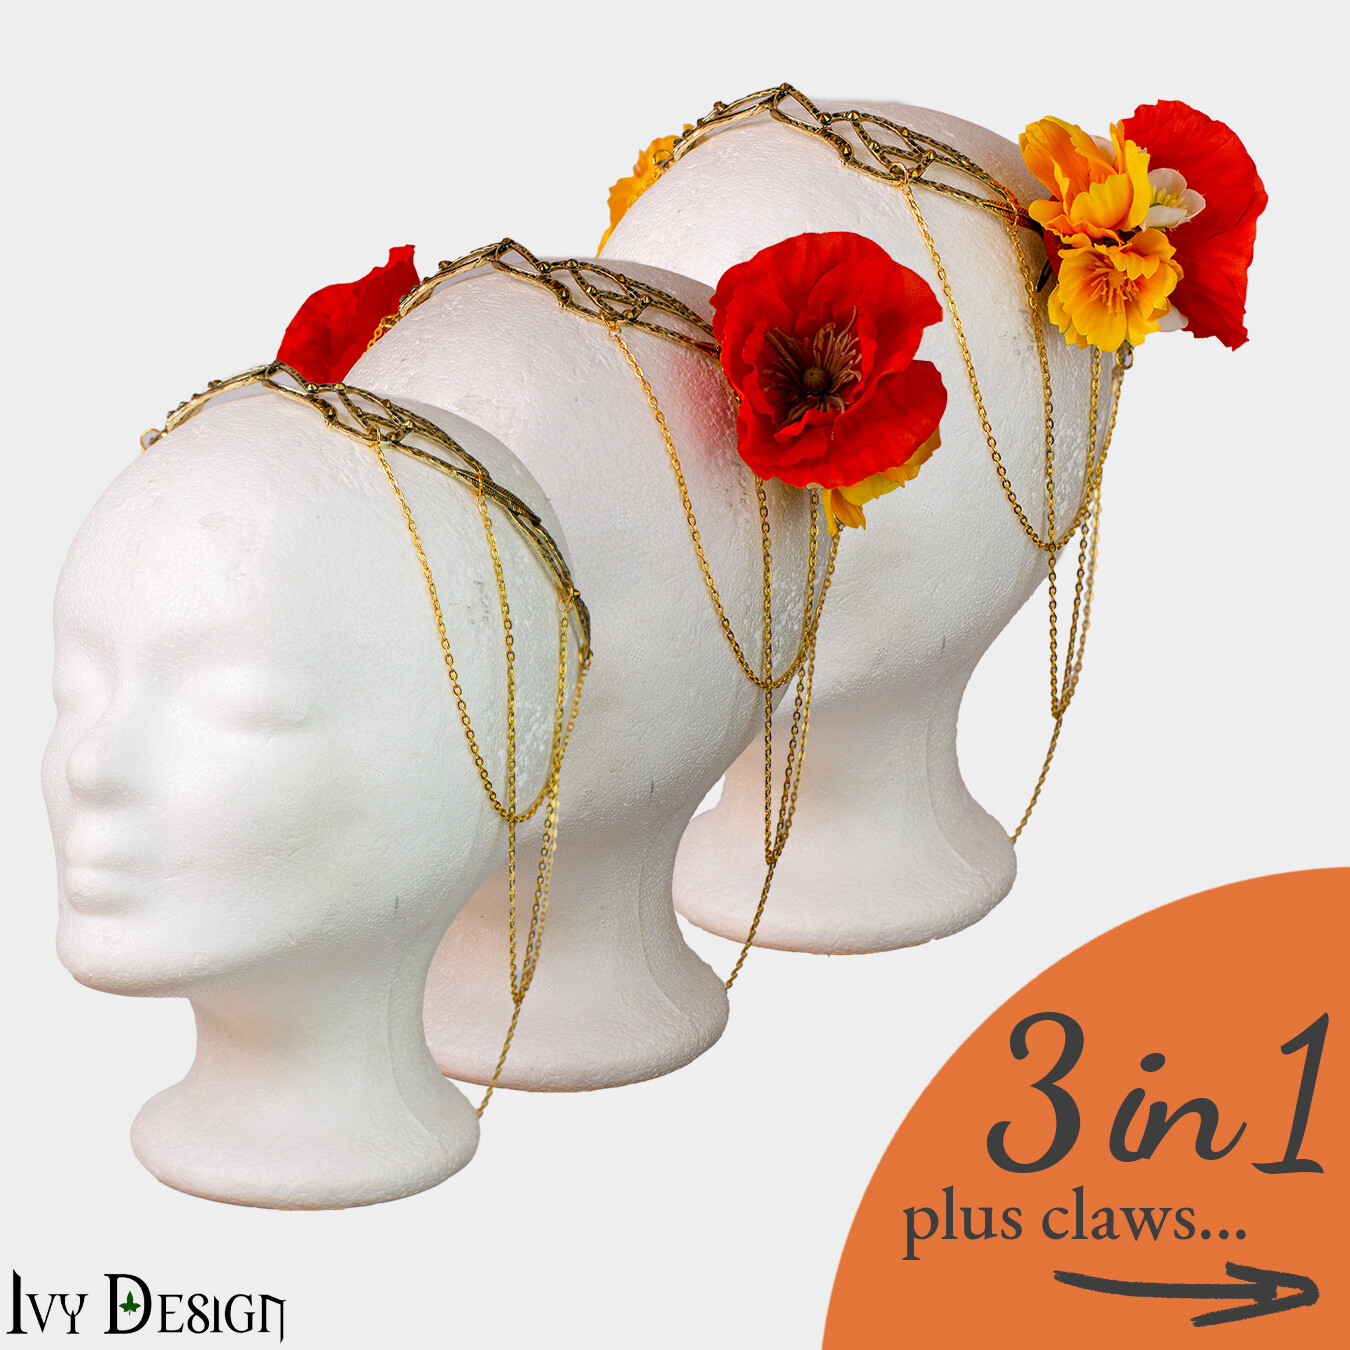 'Cairen' Headpiece and Claw-Set // 3 in 1 🌹